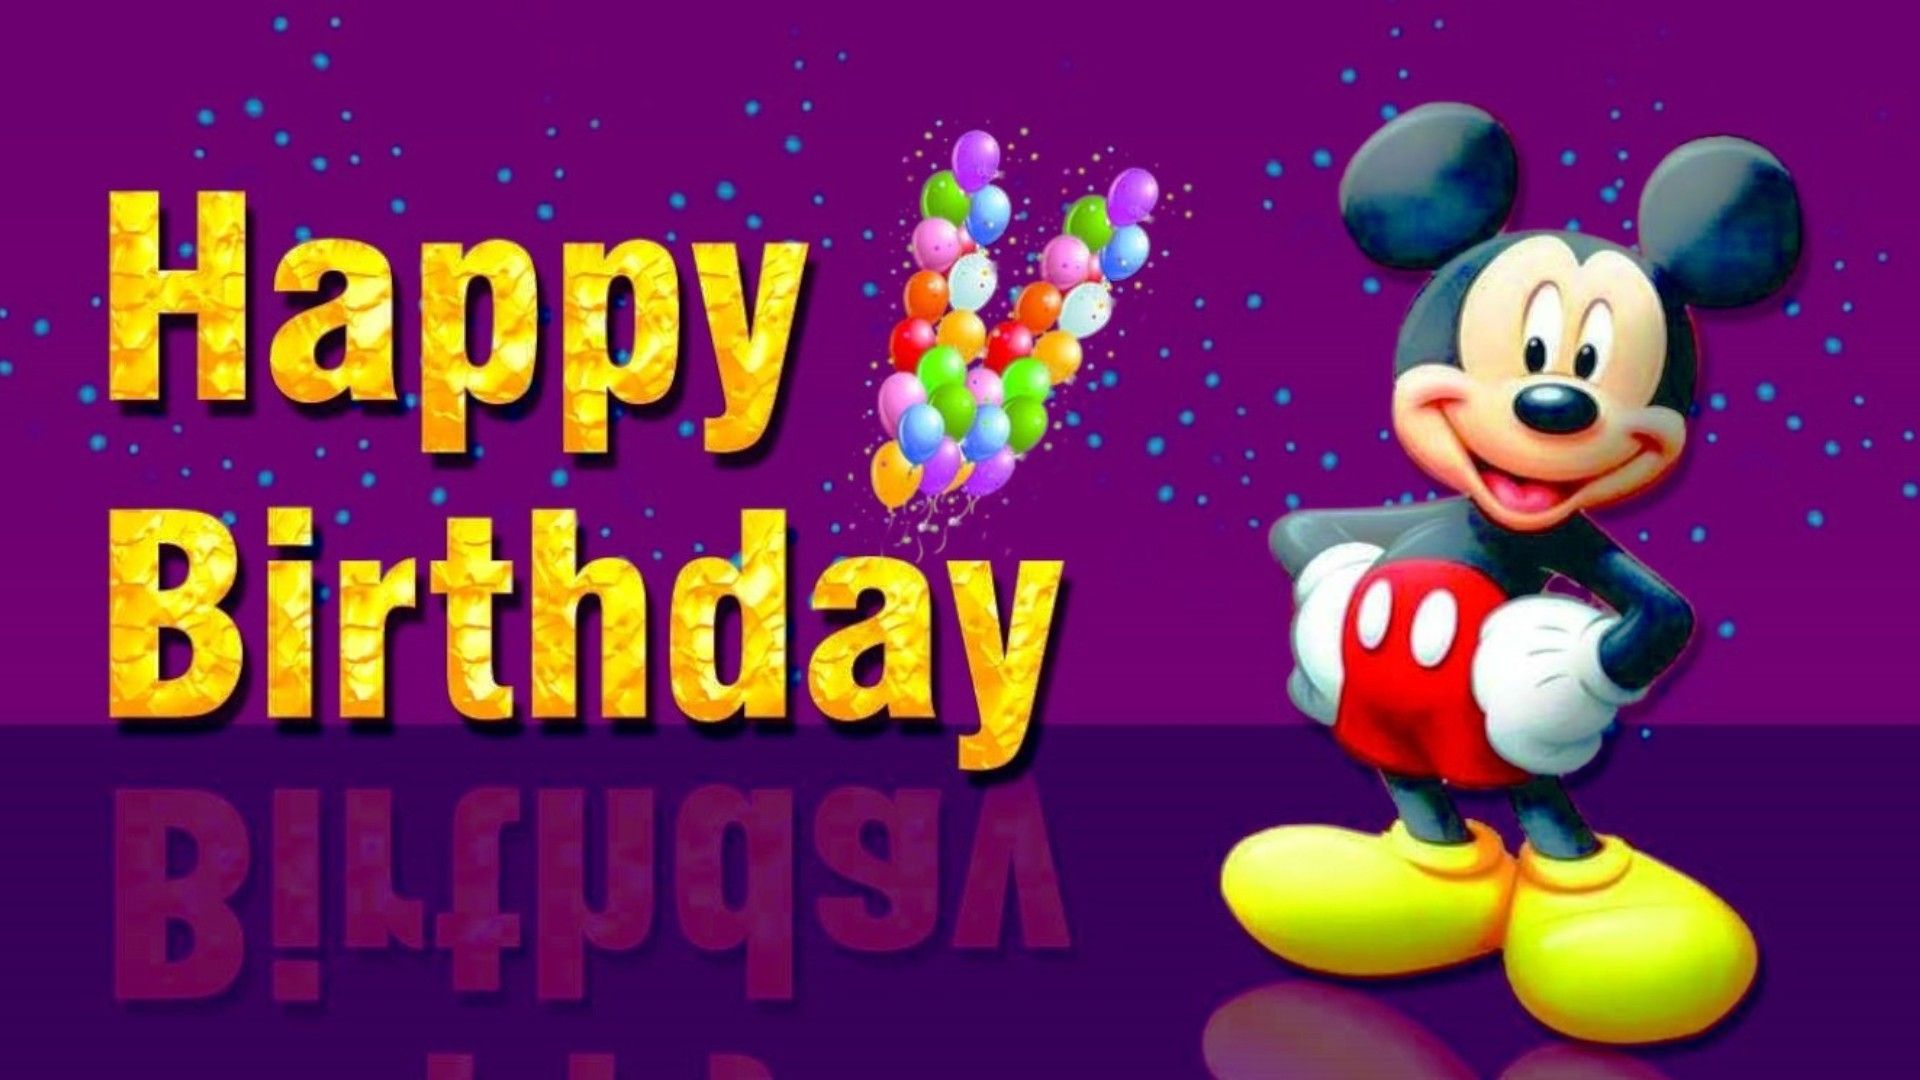 Happy Birthday Wishes Greetings Wallpapers Images Whatsapp YouTube 1920x1080